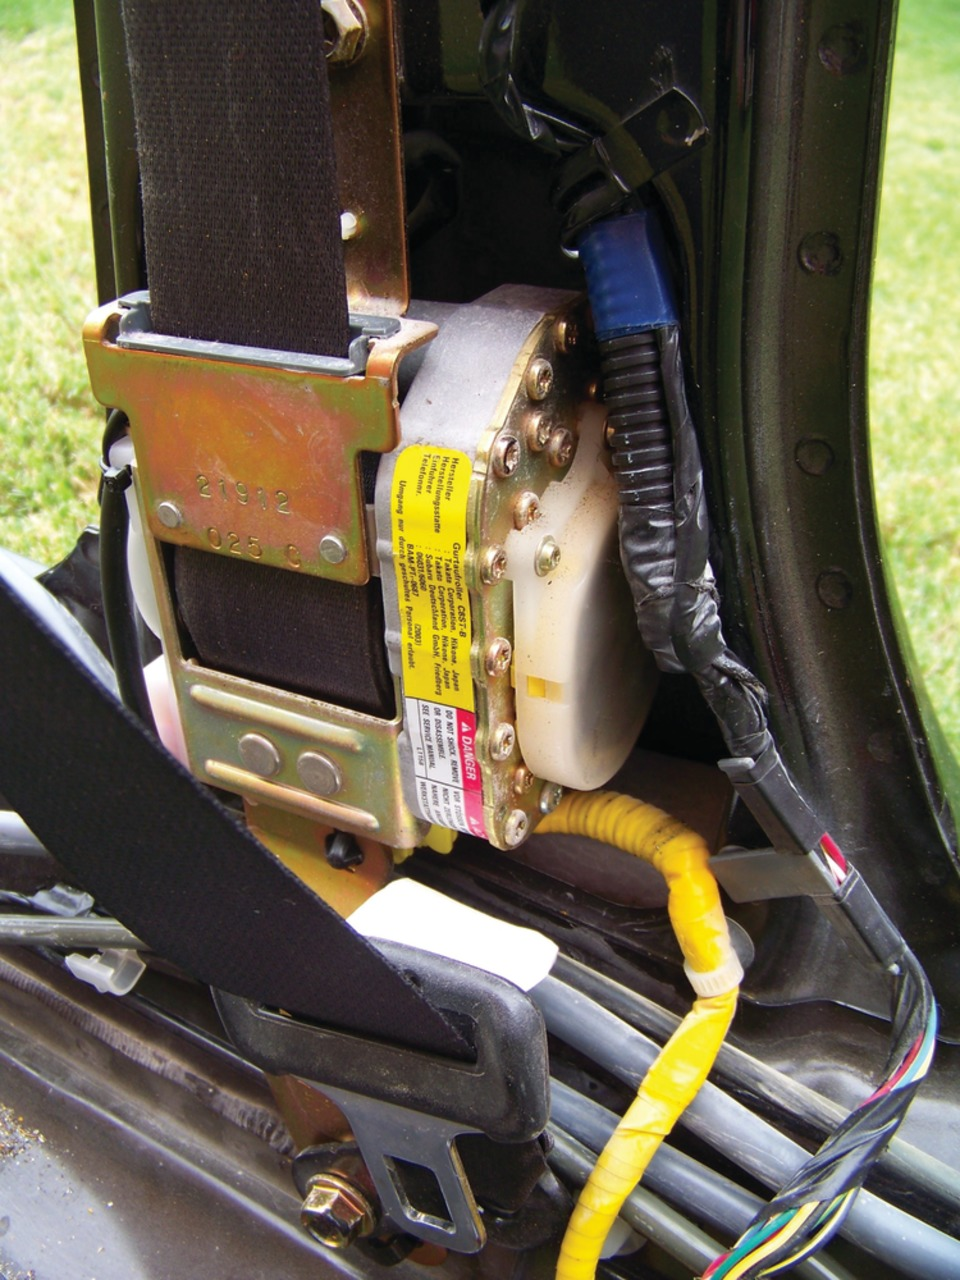 Vehicle Extrication Training Electrical Wiring Books Credit Photo By Rescue 1 2 3 Book Pg 148